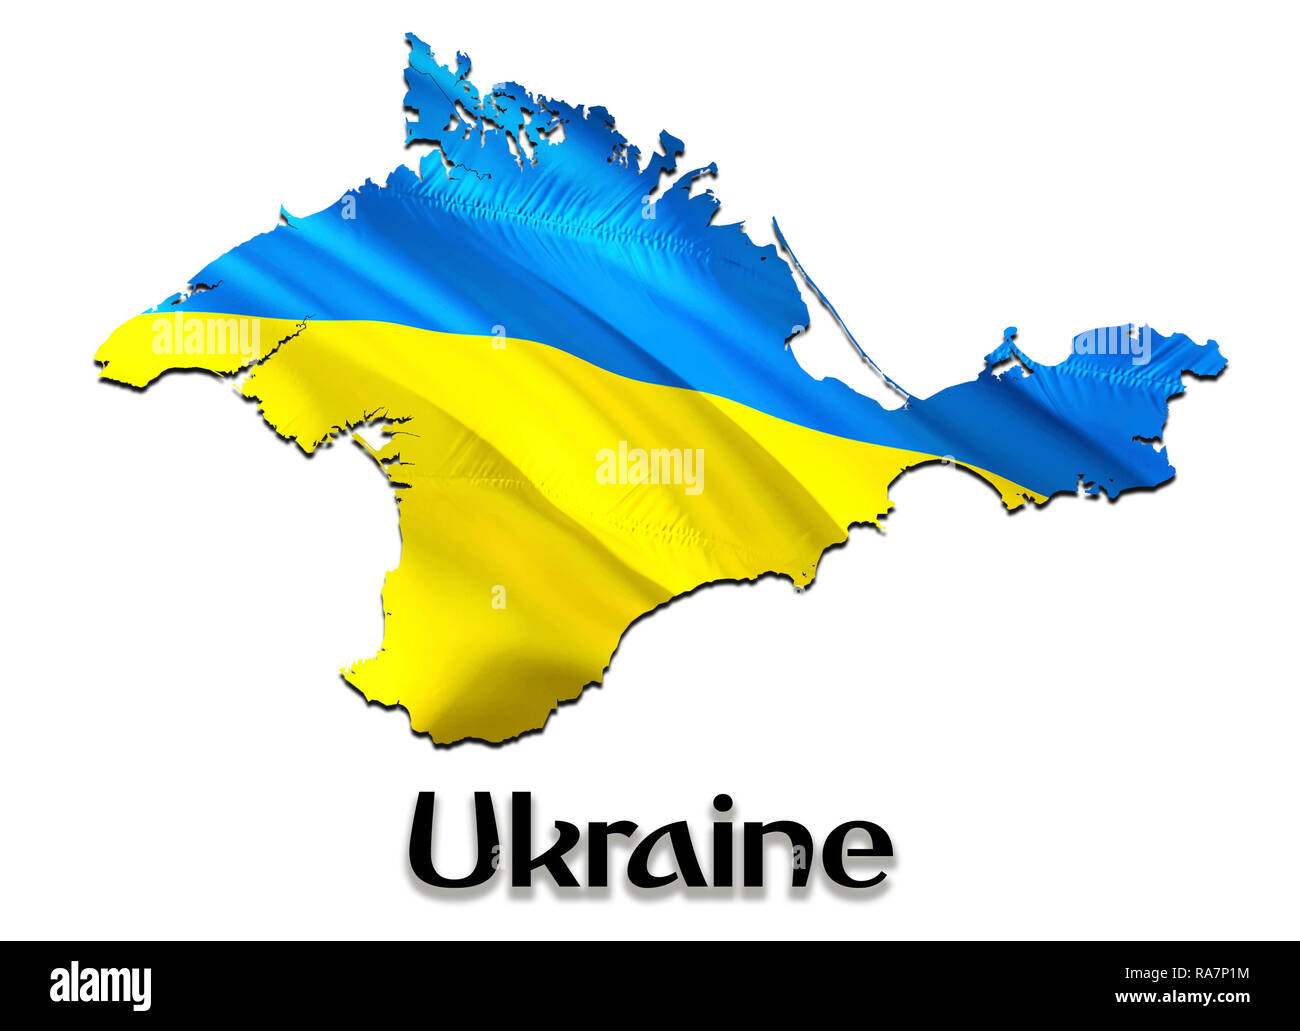 Russia Ukraine Border High Resolution Stock Photography And Images